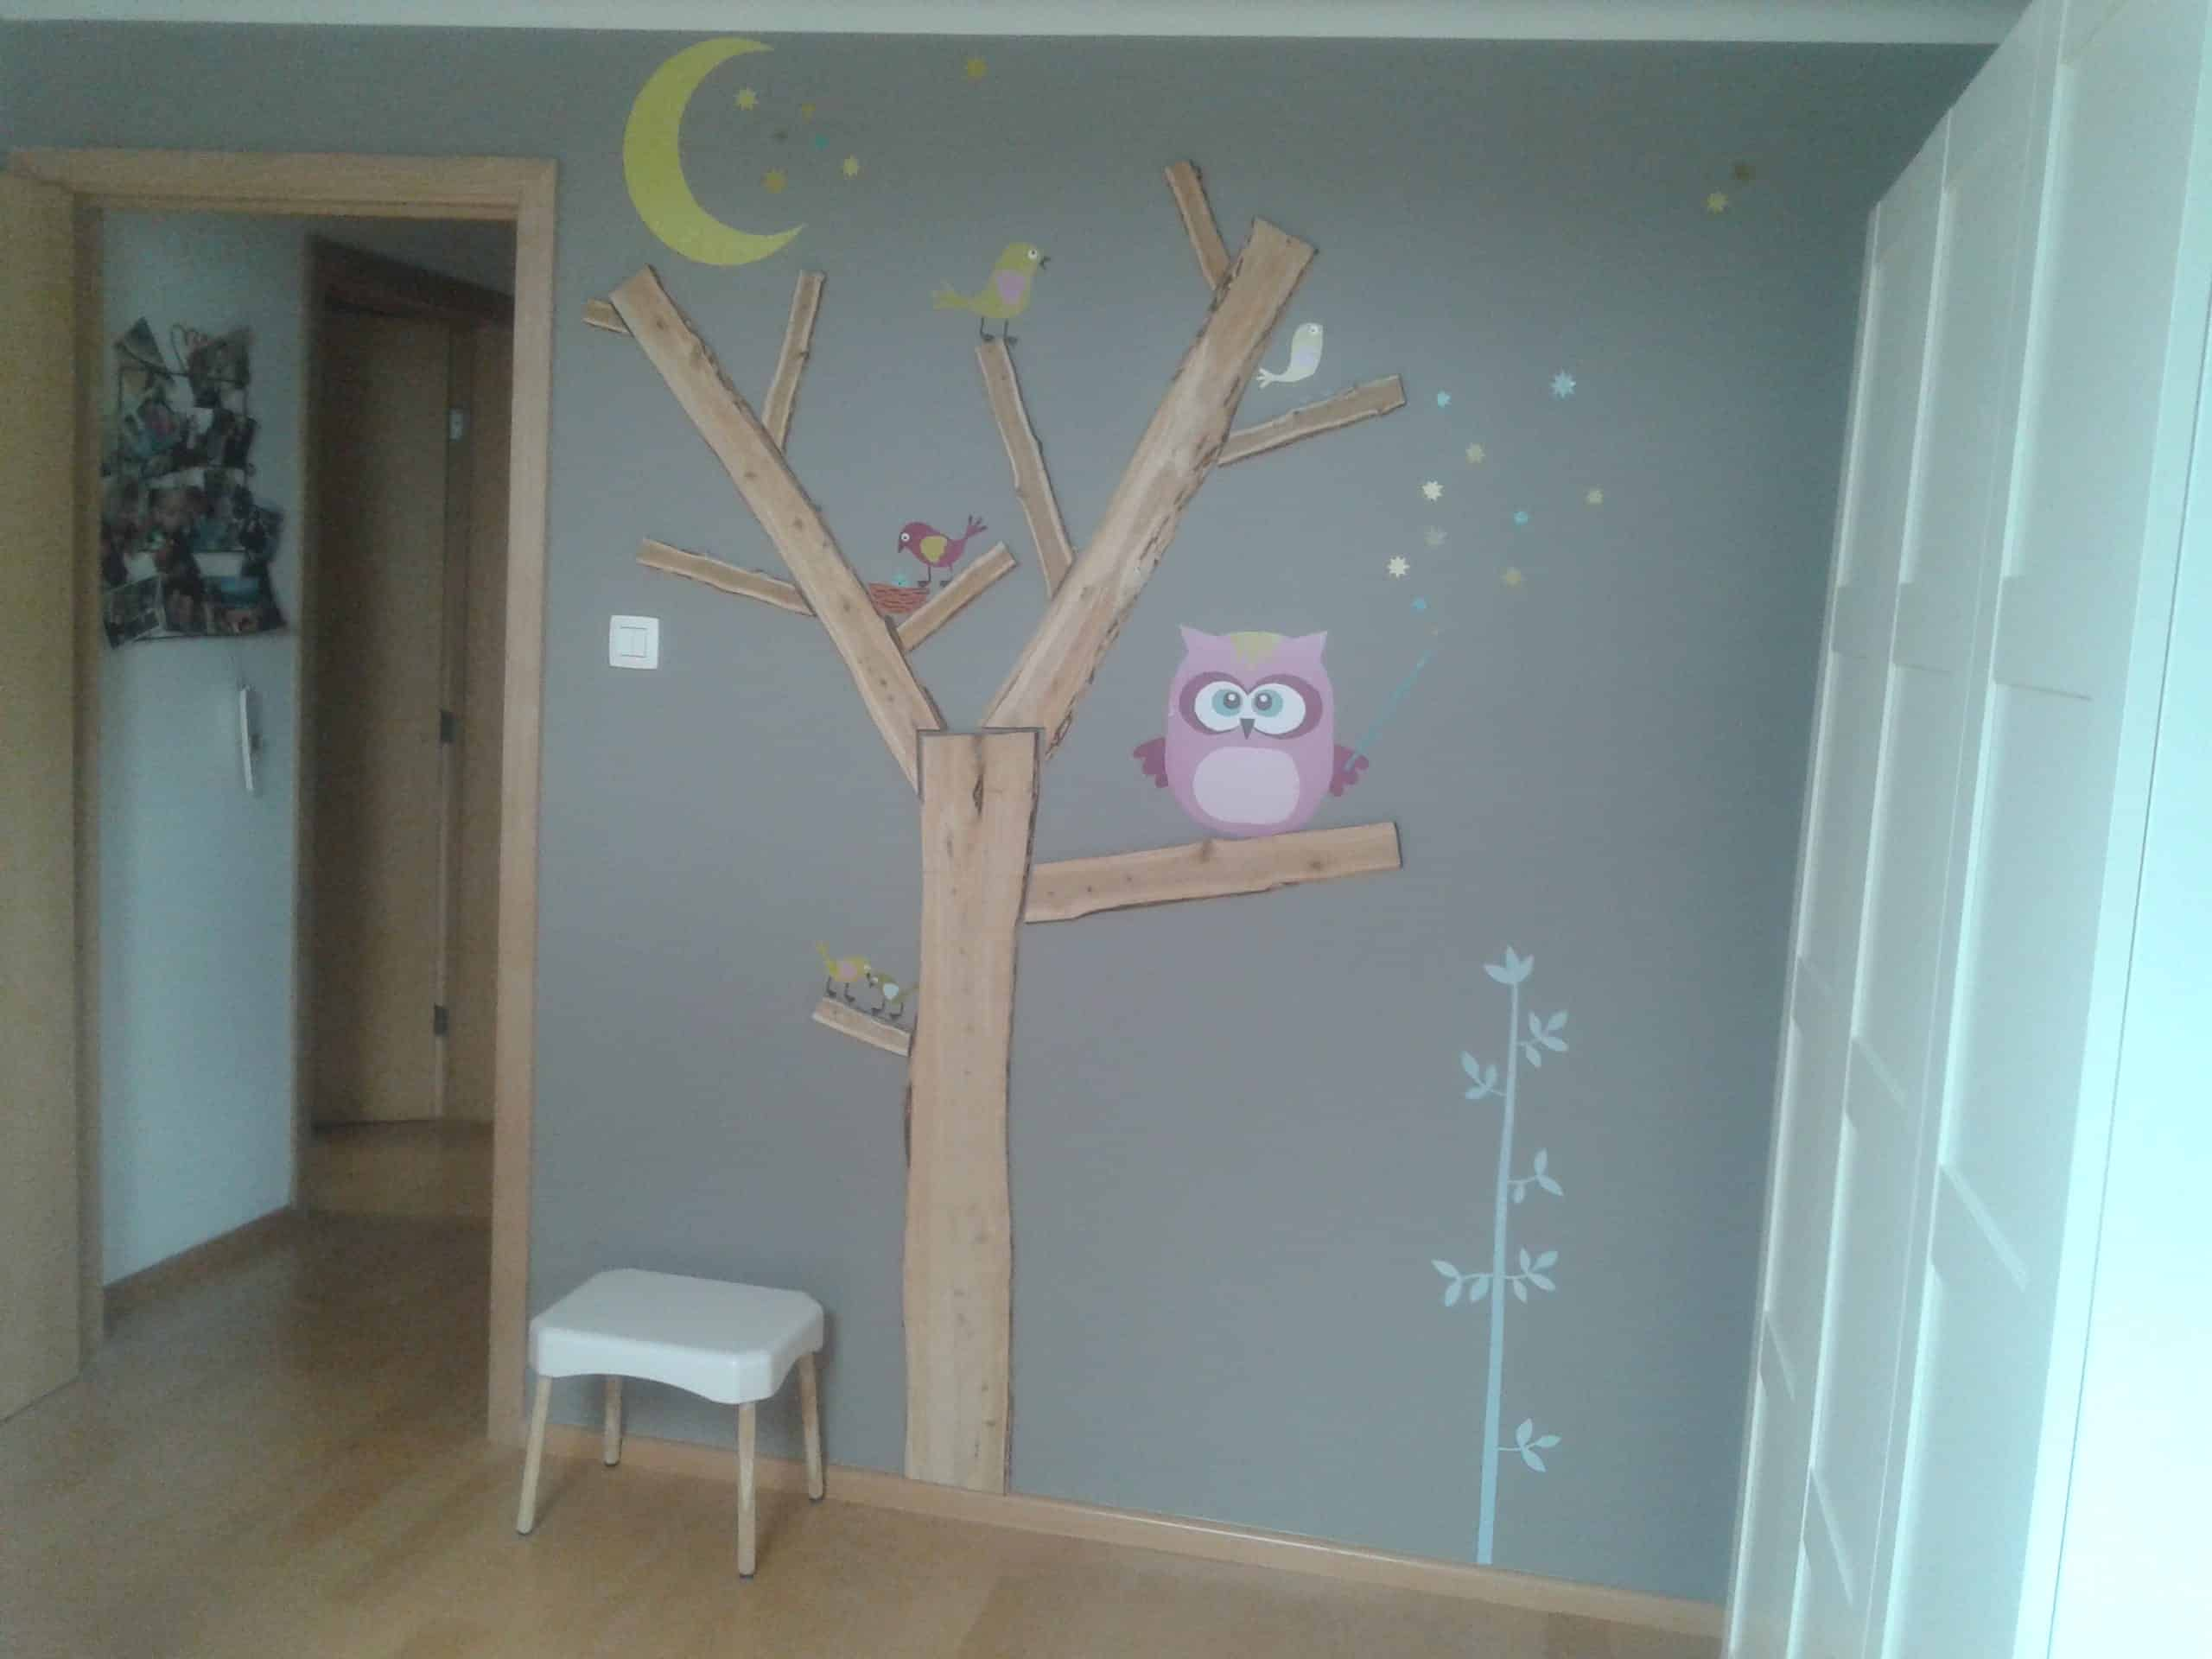 D Coration Arbre Pour Chambre B B Fille Tree Wall D Cor For My Daughter Bedroom Recyclart